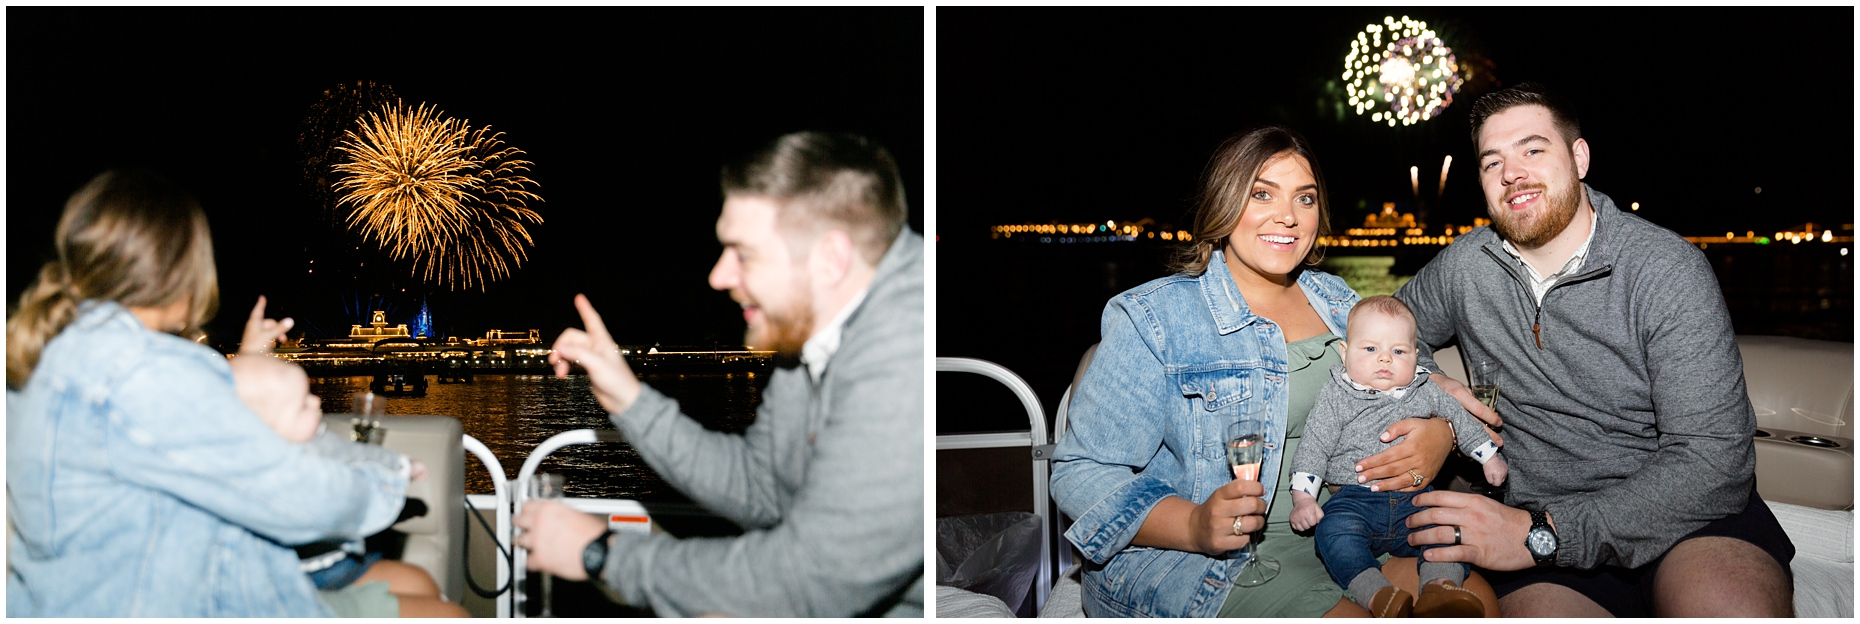 Disney_World_Fireworks_Cruise_Wedding_Proposal_Photographer